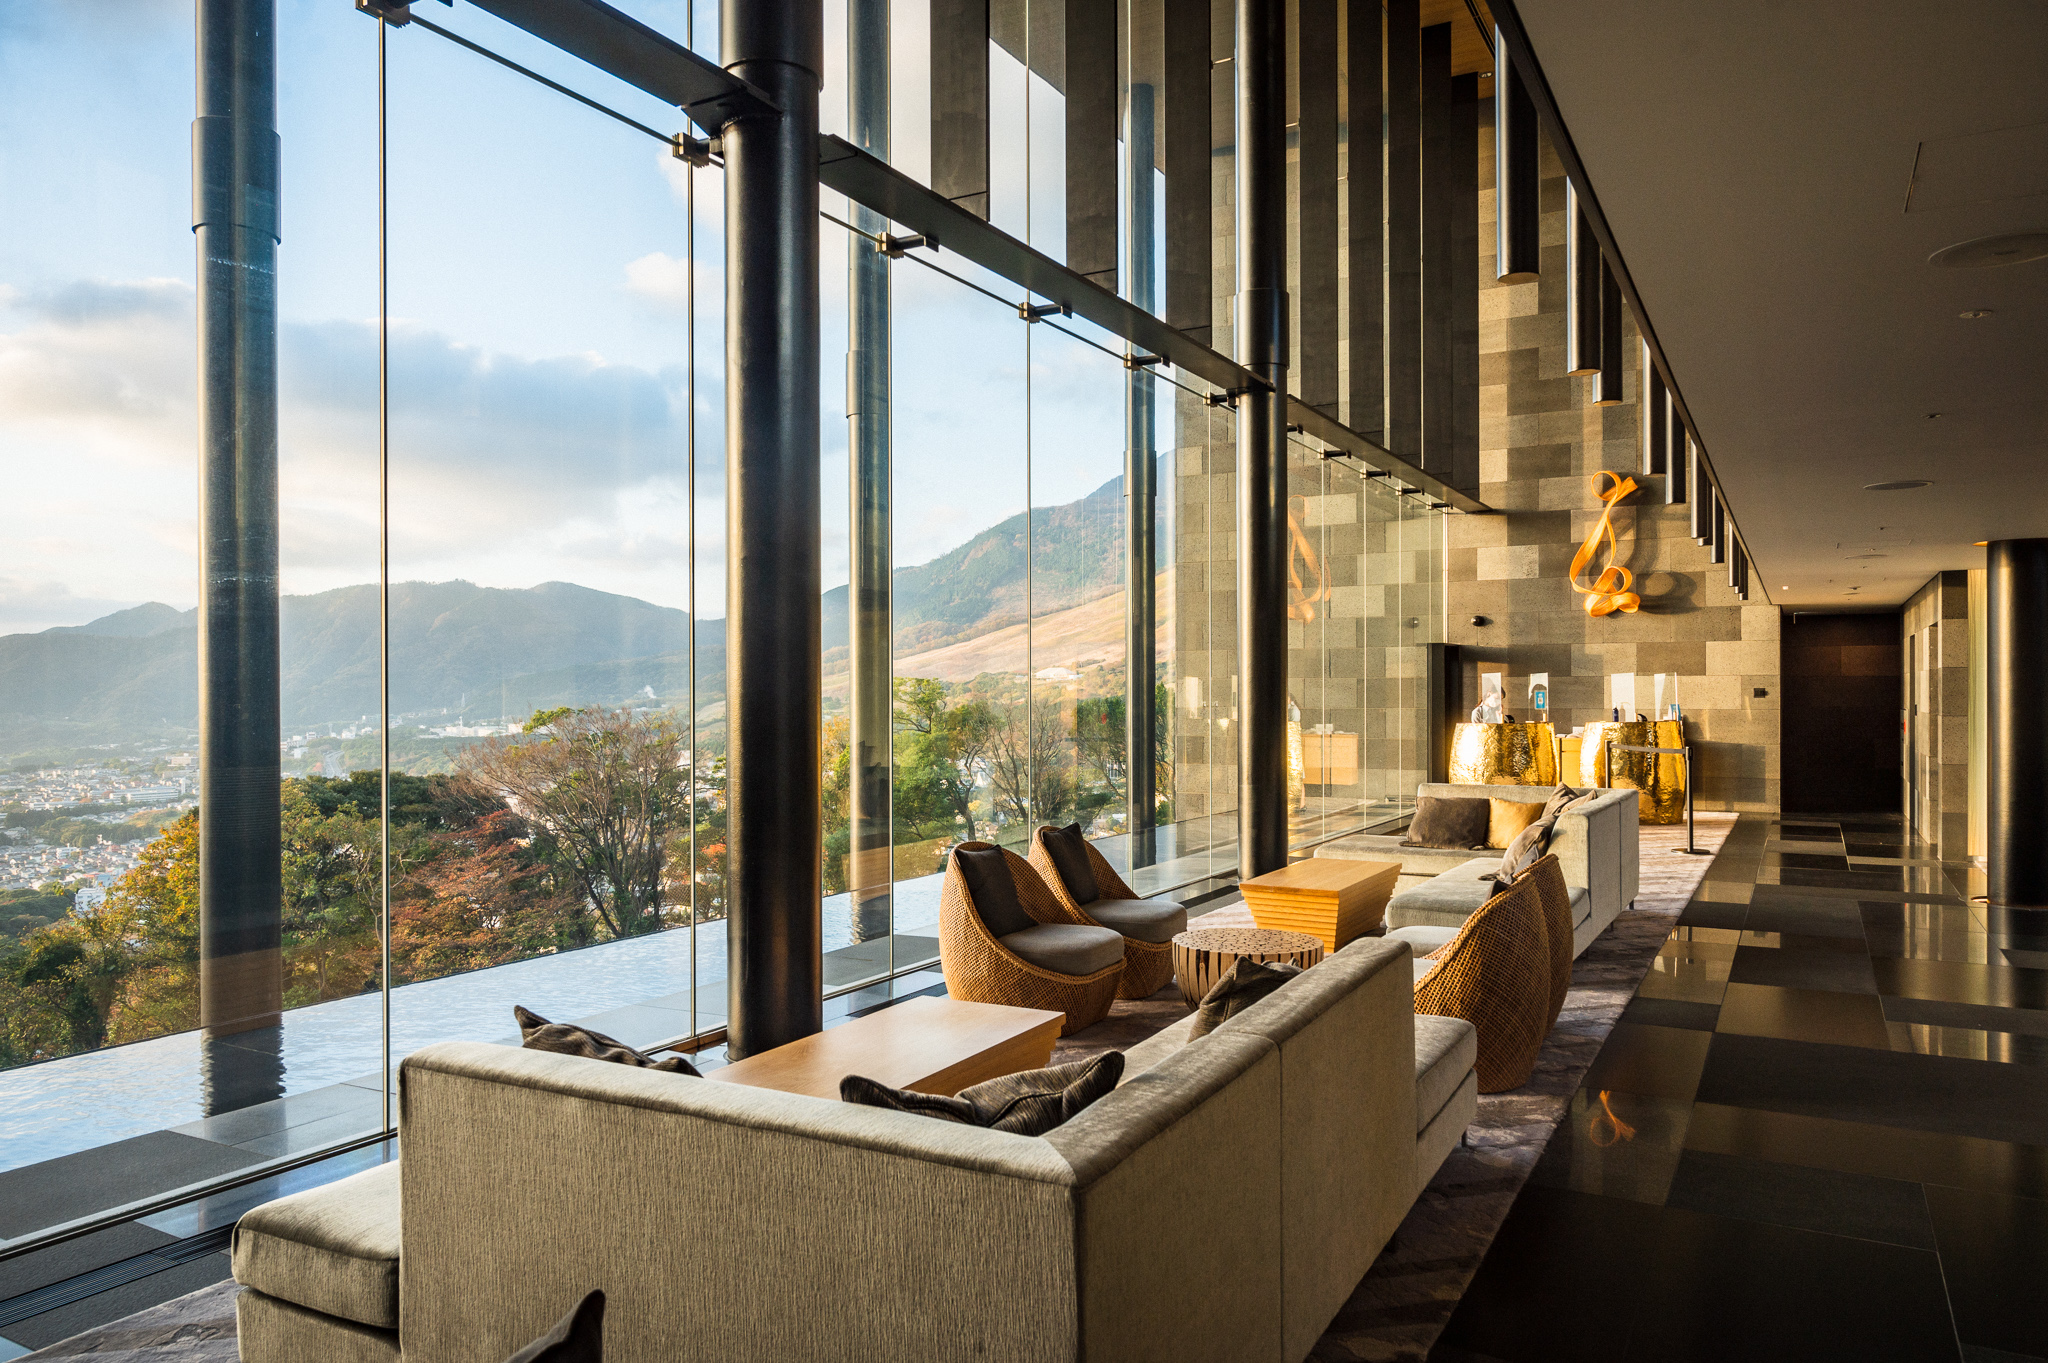 Unexpected Luxury Awaits You in World-Class Accommodations, Onsen, and Cuisine in Beppu